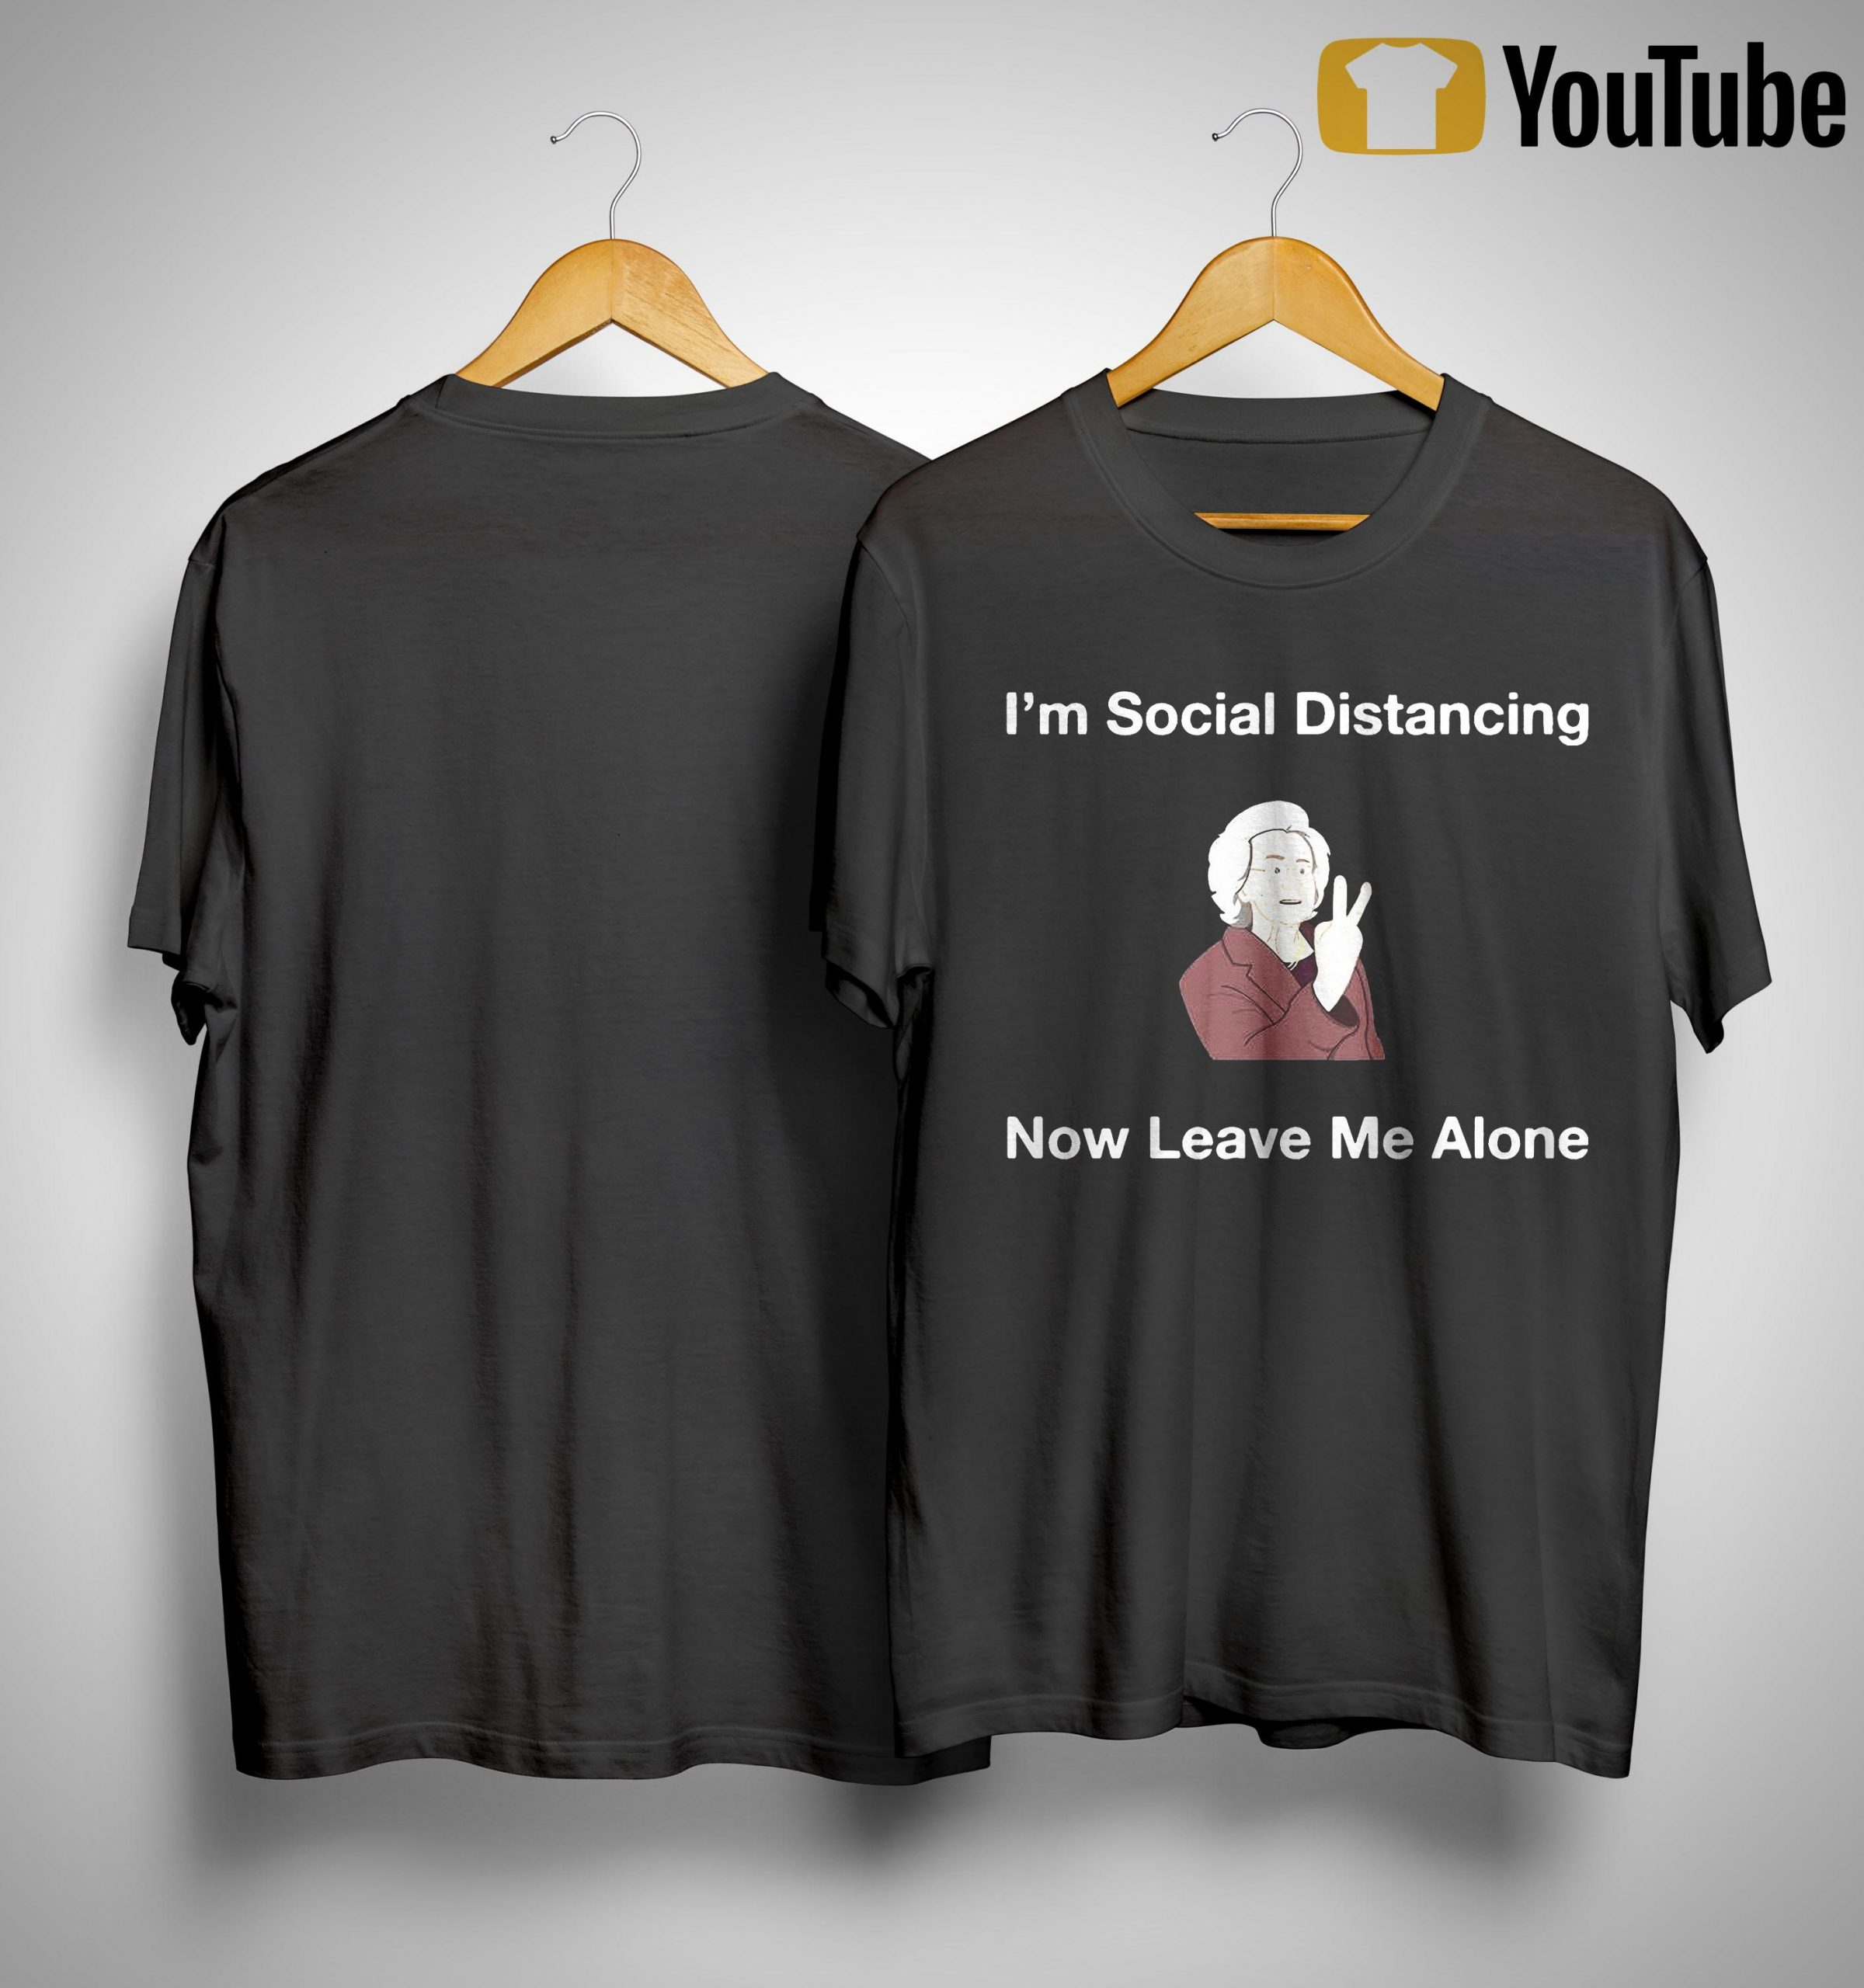 I'm Social Distancing Now Leave Me Alone Shirt